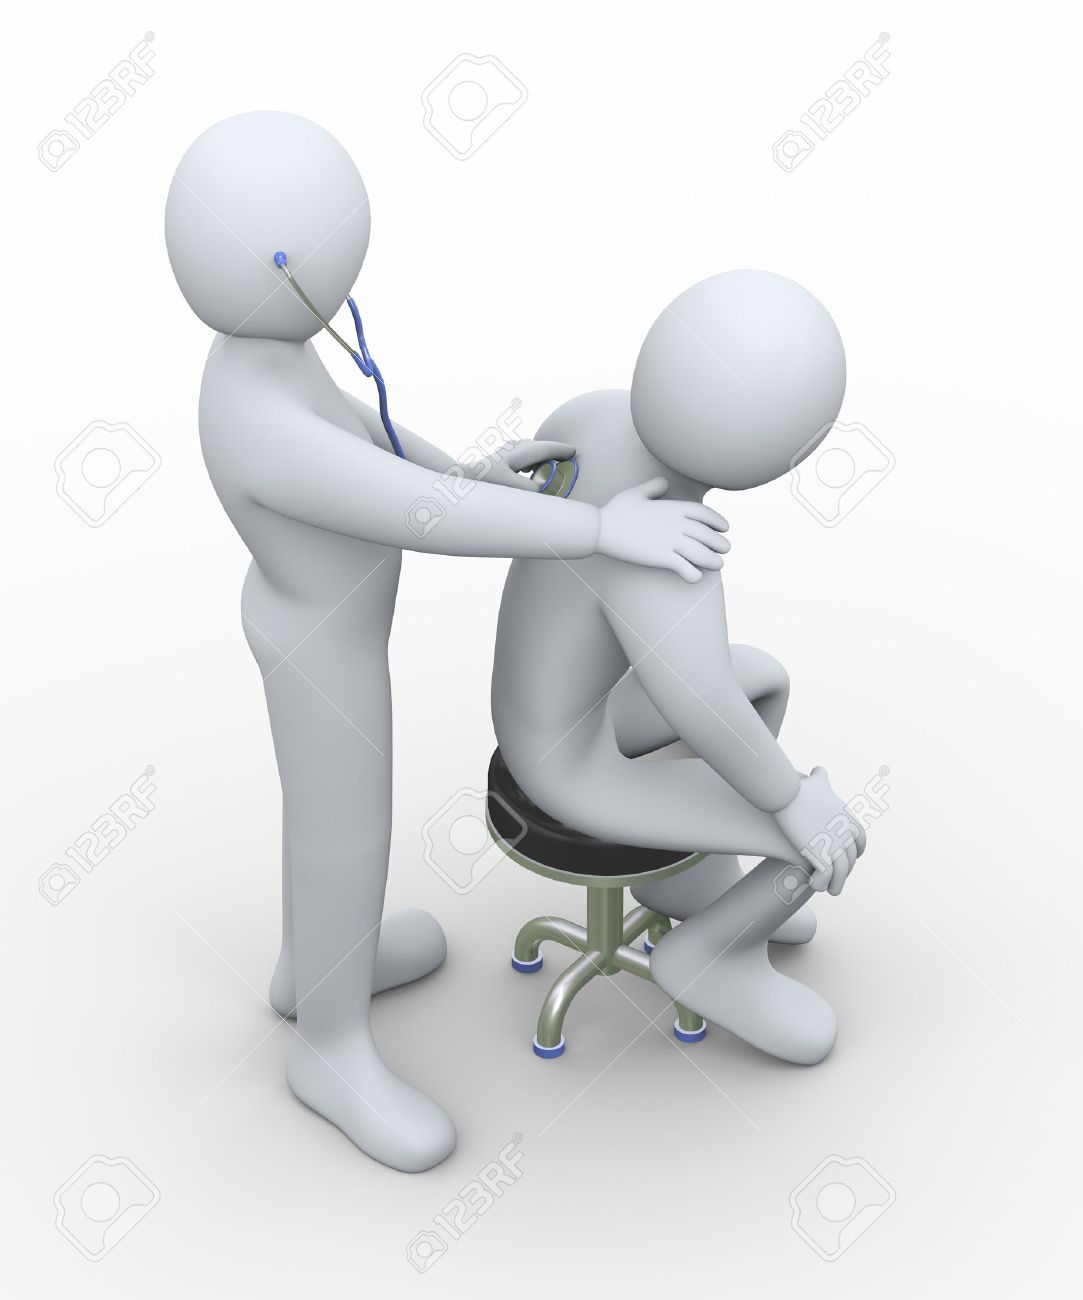 3d illustration of doctor examining a person with stethoscope  3d rendering of man - people character Stock Photo - 24264063